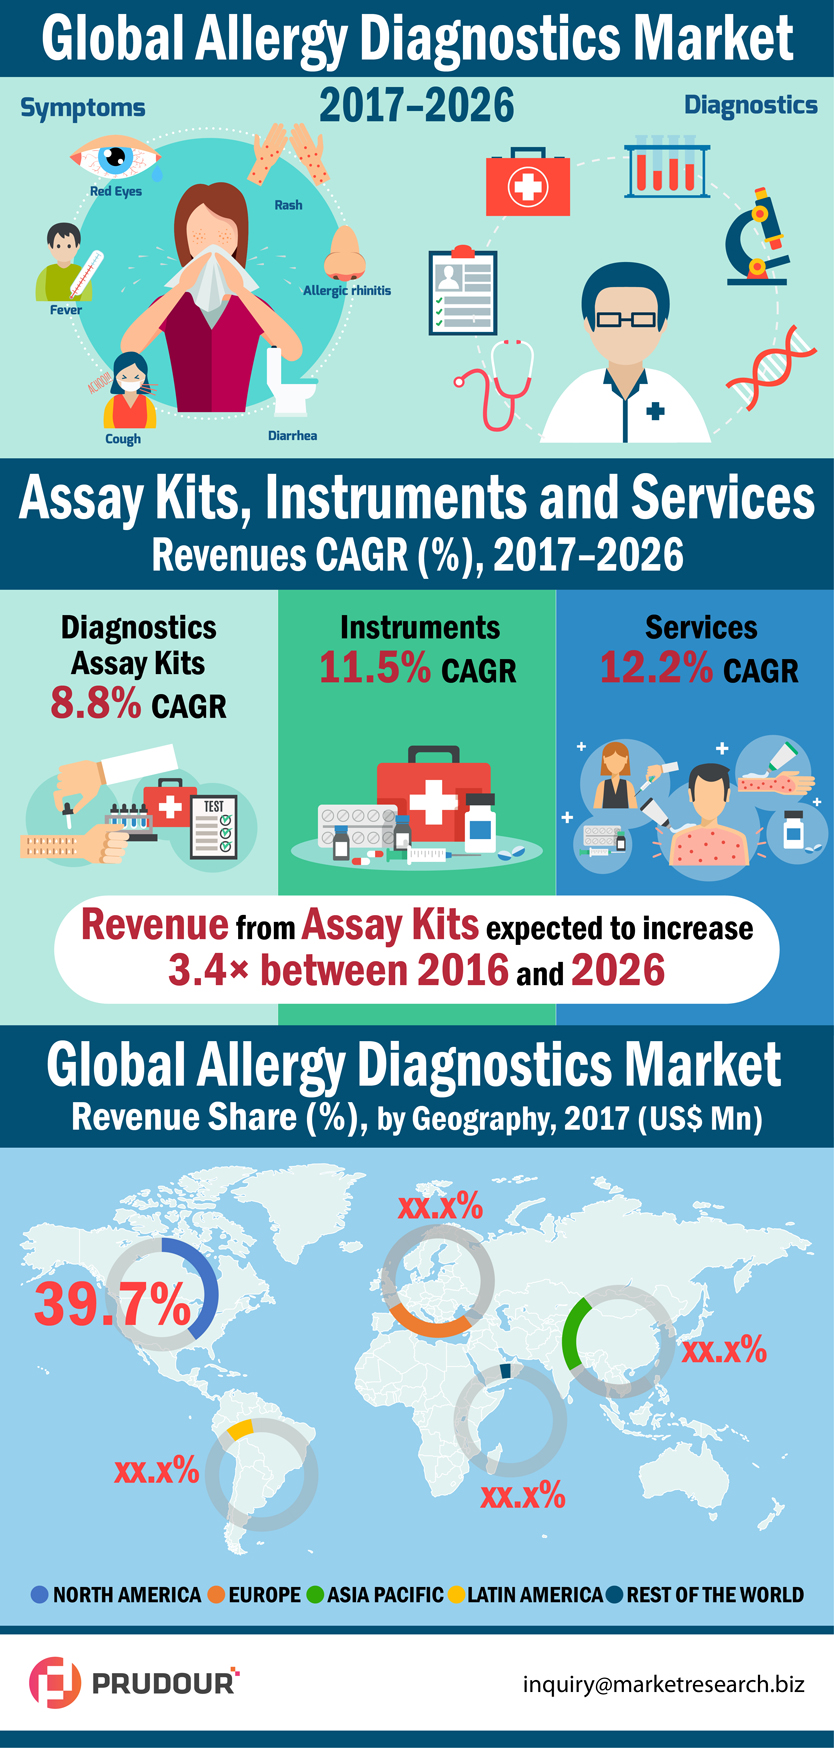 Global Allergy Diagnostics Market is expected to reach US$ 5,417.6 Mn in 2026